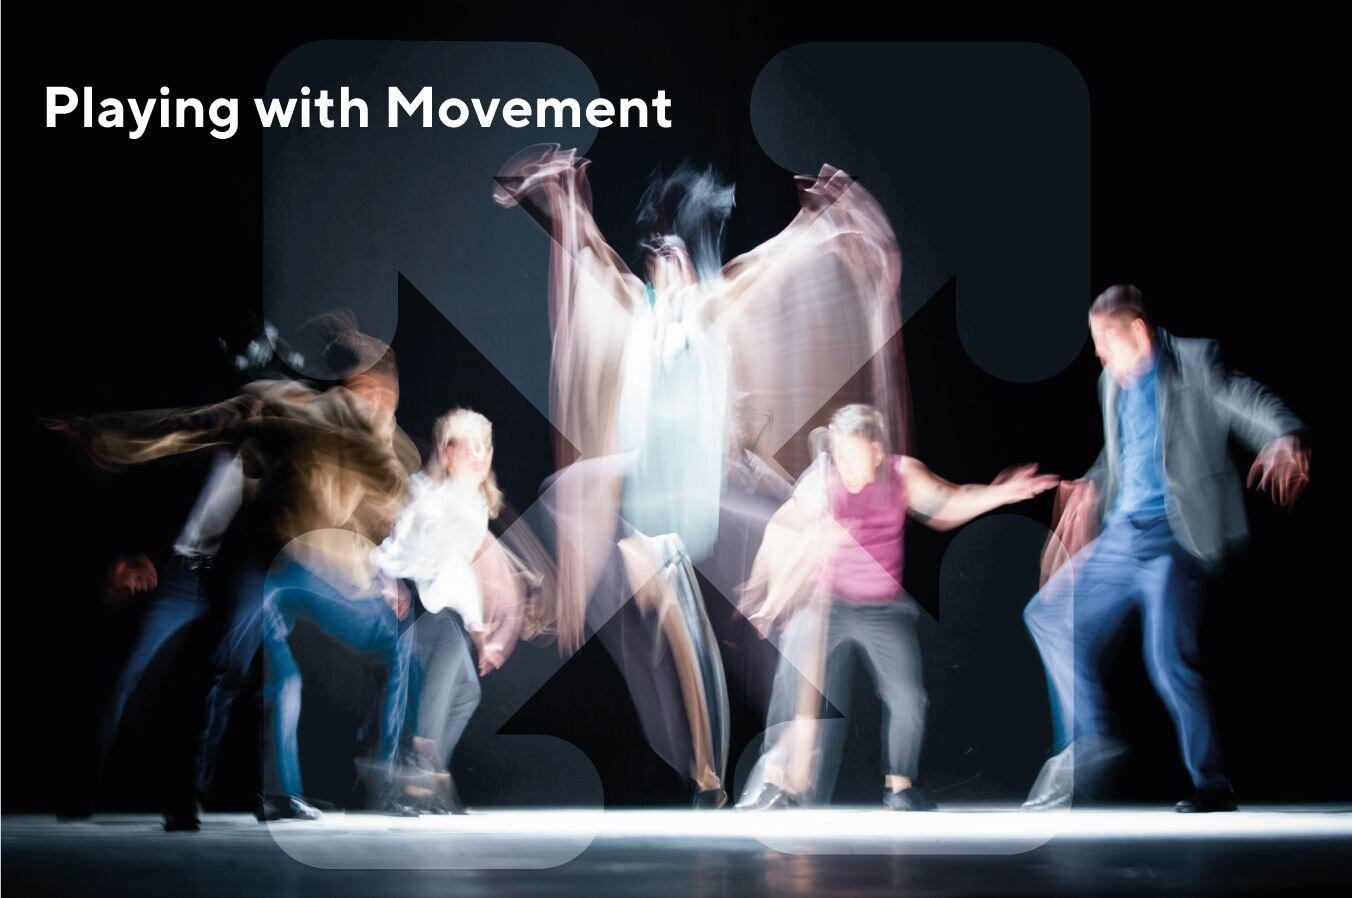 Playing with Movement: From Democratic Desire to Communicating for Change